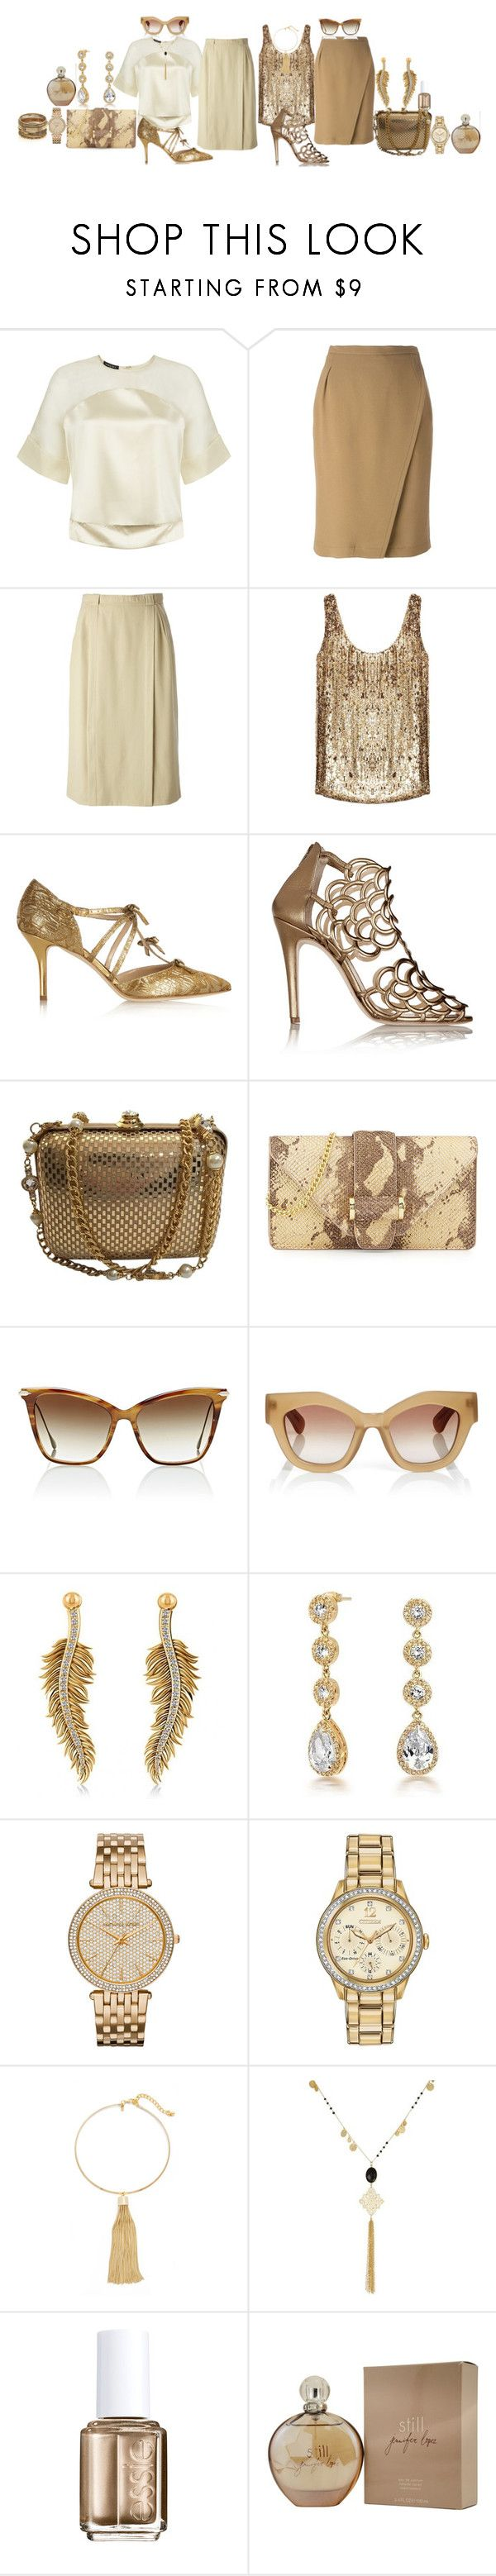 """Double your trouble"" by blujay1126 ❤ liked on Polyvore featuring Vielma London, Nina Ricci, CÉLINE, ZoÃ« Jordan, Oscar de la Renta, St. John, Ivanka Trump, Dita, Jonathan Saunders and Allurez"